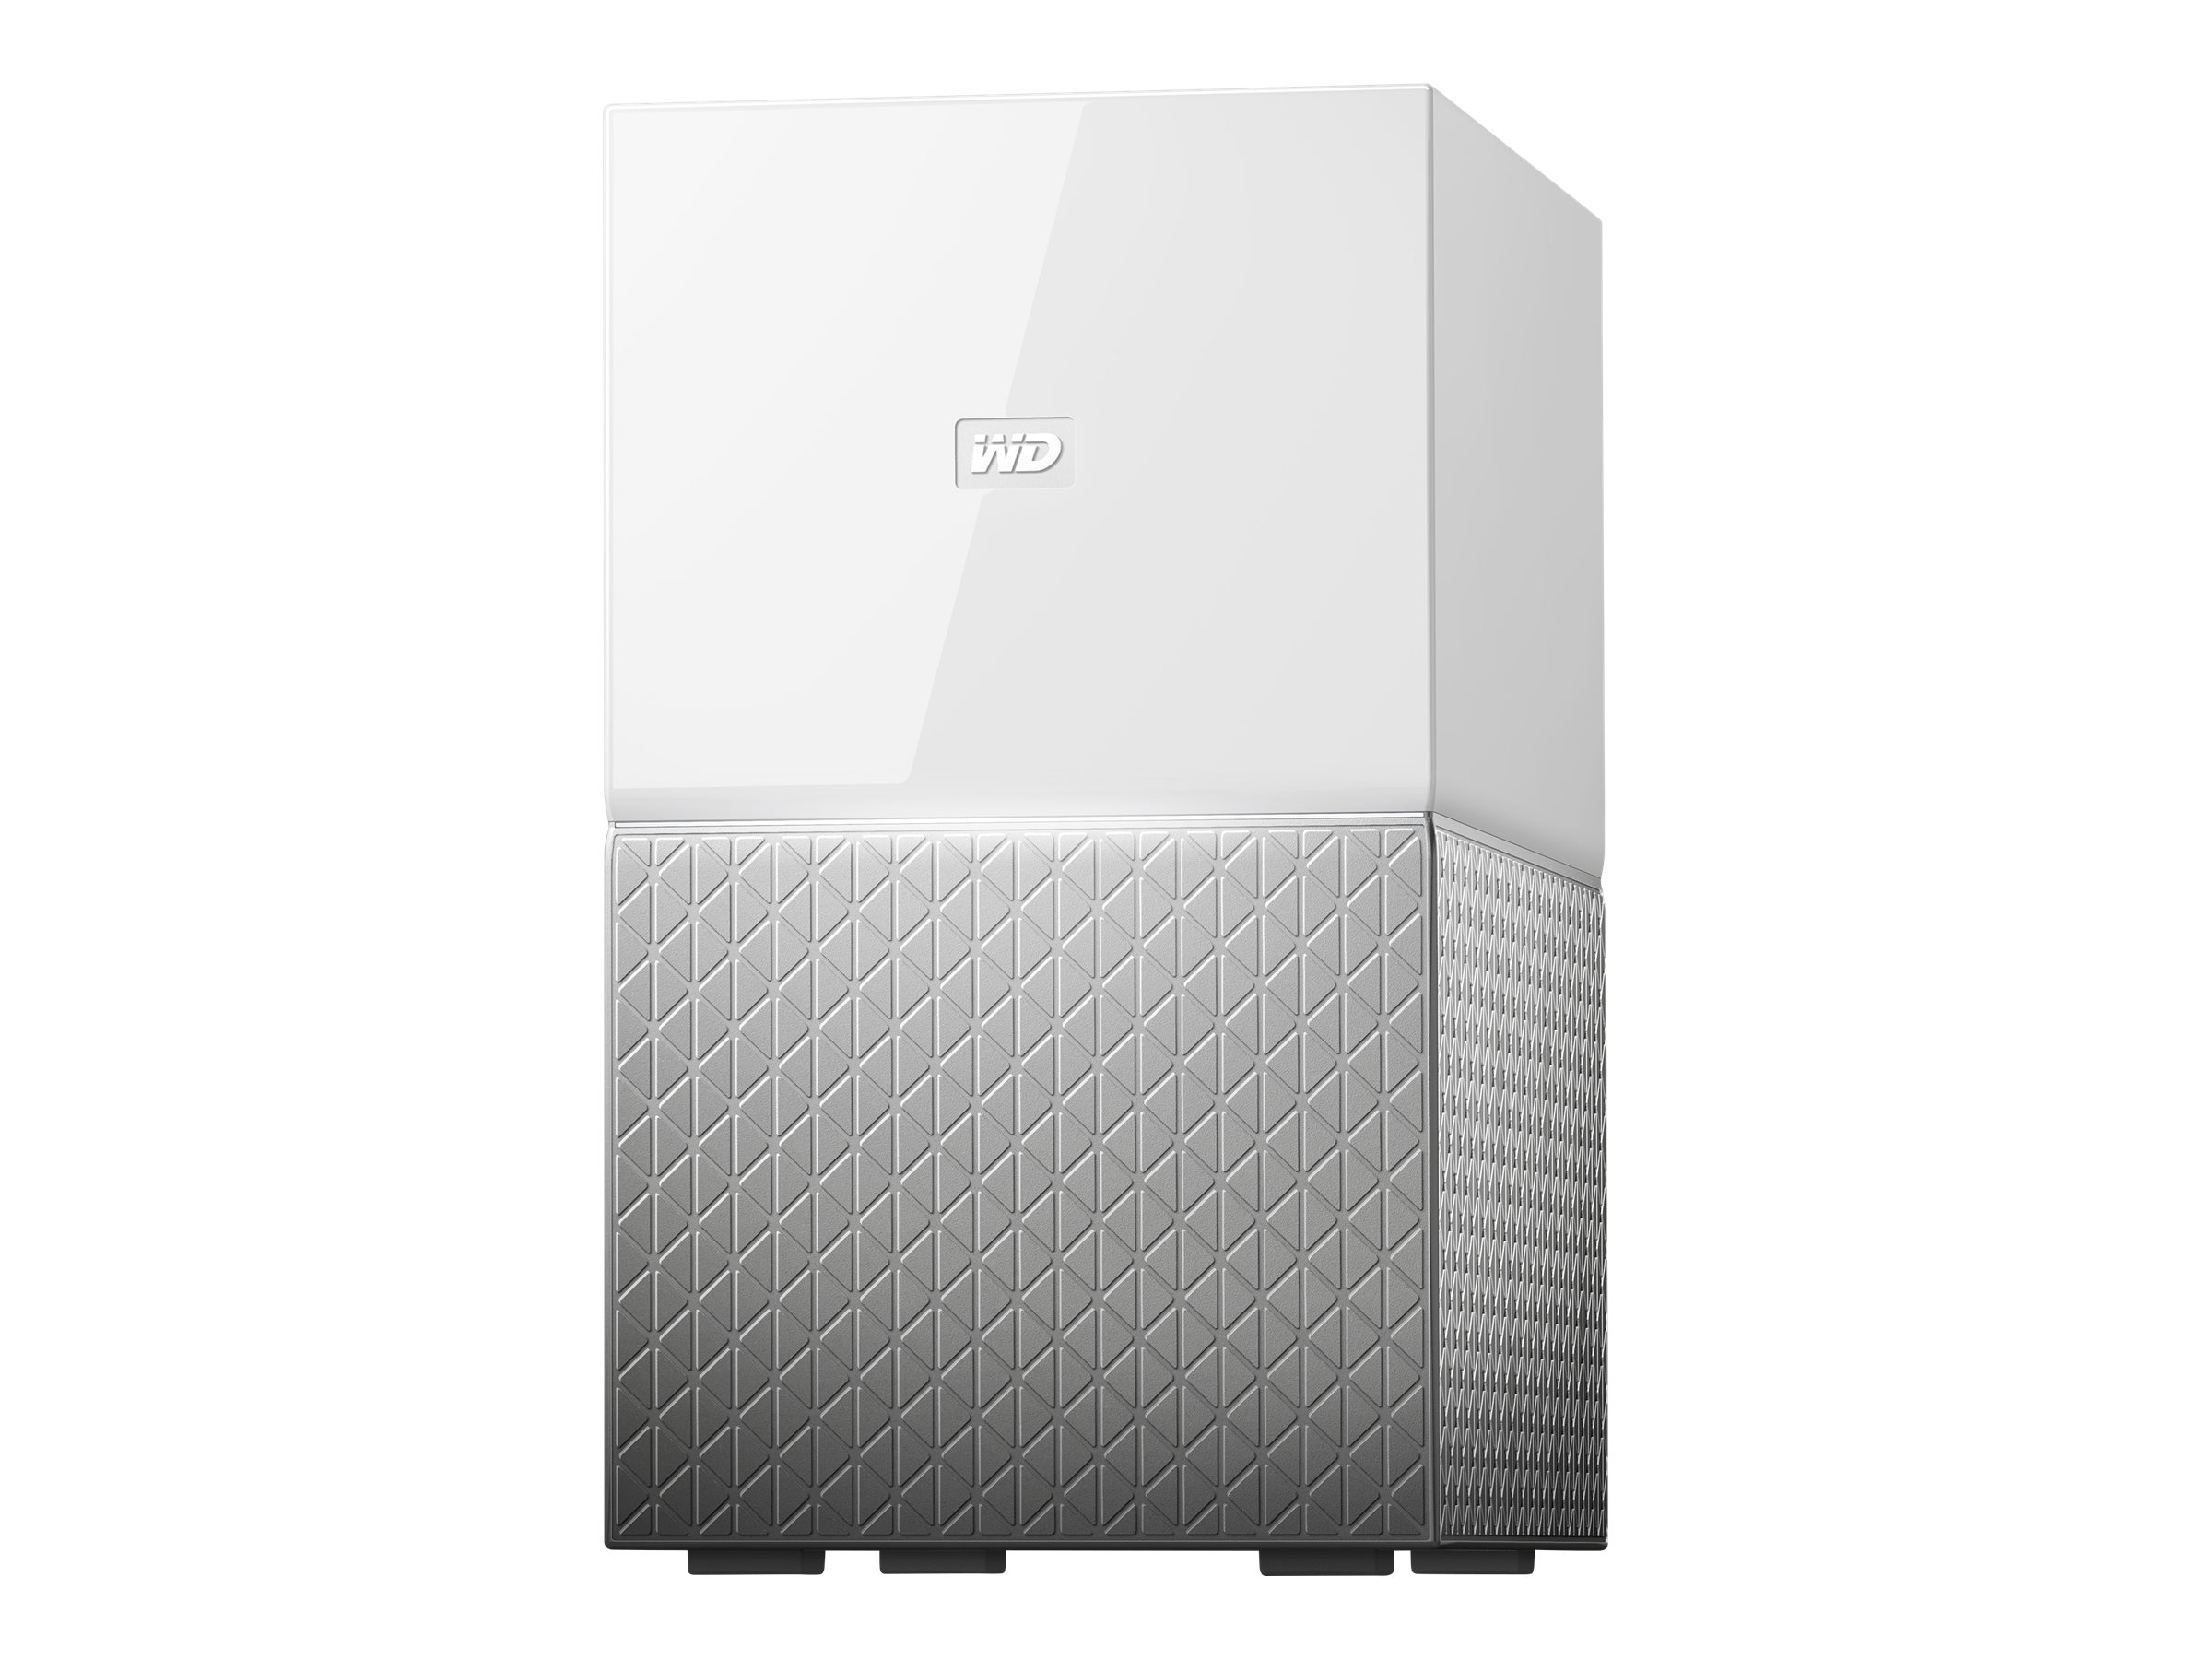 WD My Cloud Home Duo WDBMUT0160JWT - personal cloud storage device - 16 TB